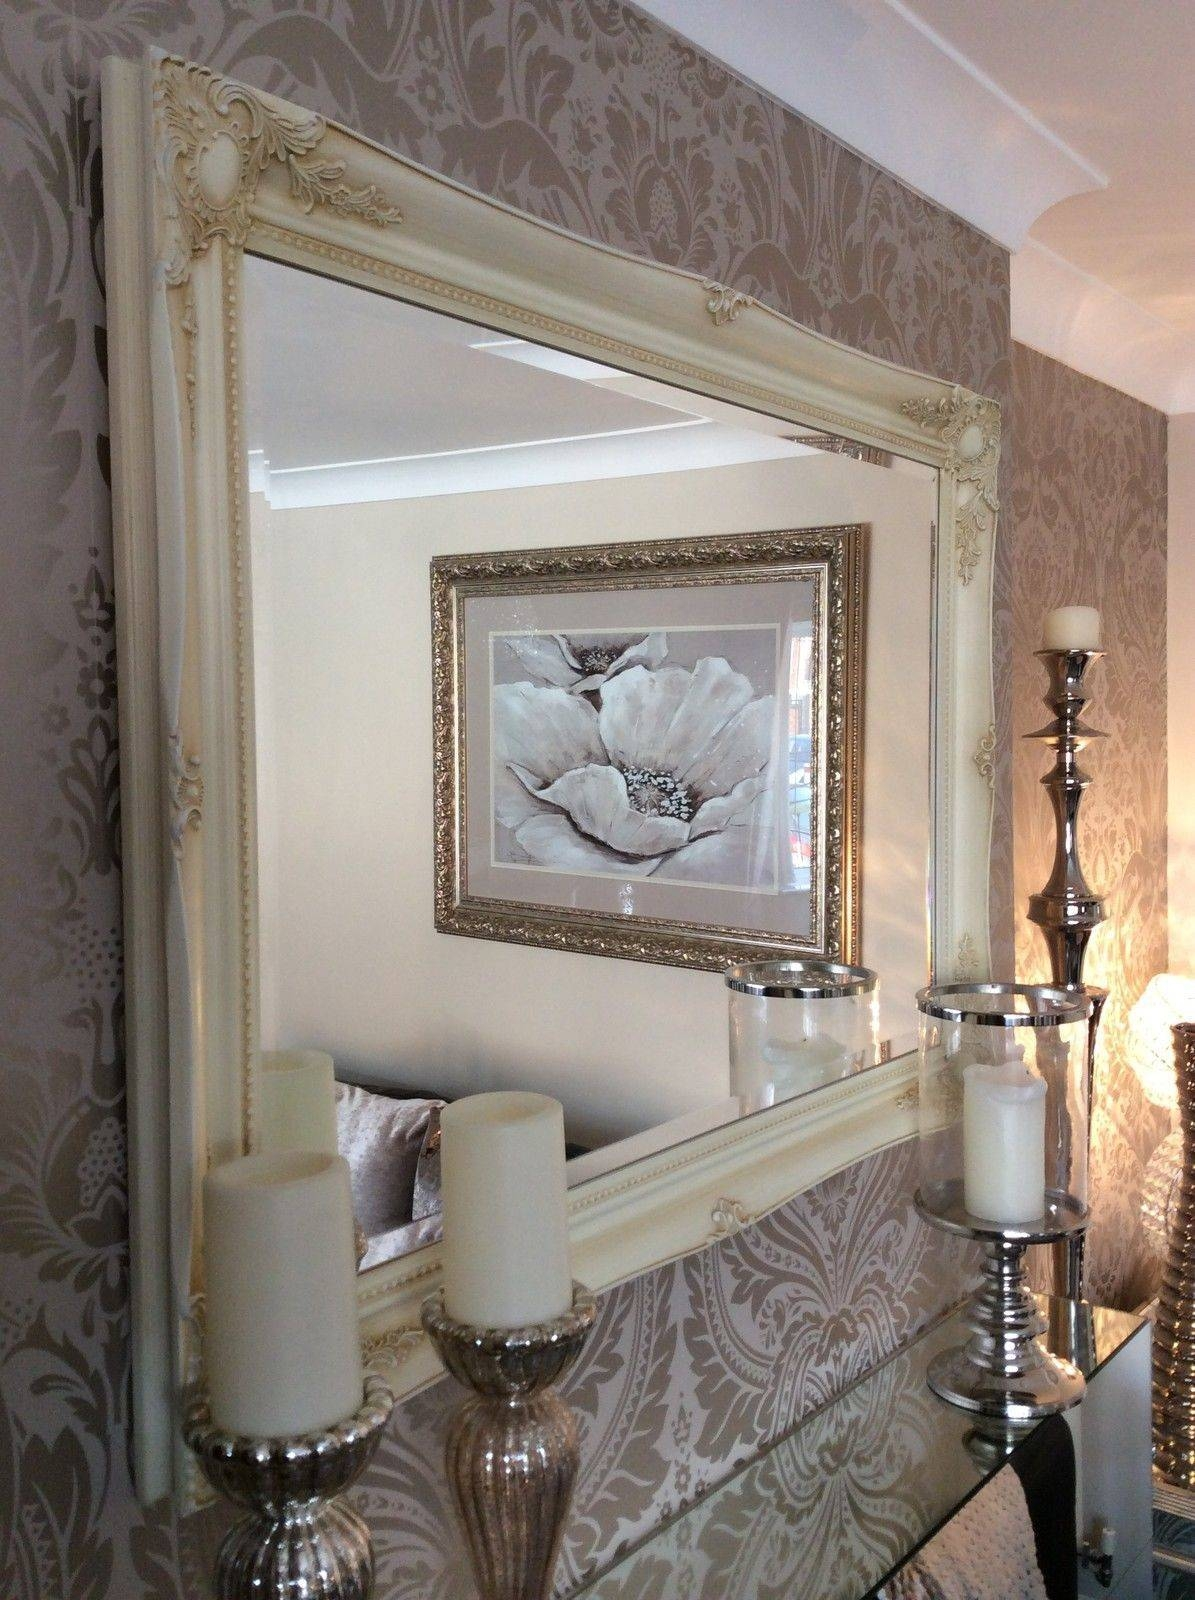 Large Cream Decorative Stunning Shabby Chic Wall Mirror Free P&p pertaining to Huge Ornate Mirrors (Image 8 of 15)